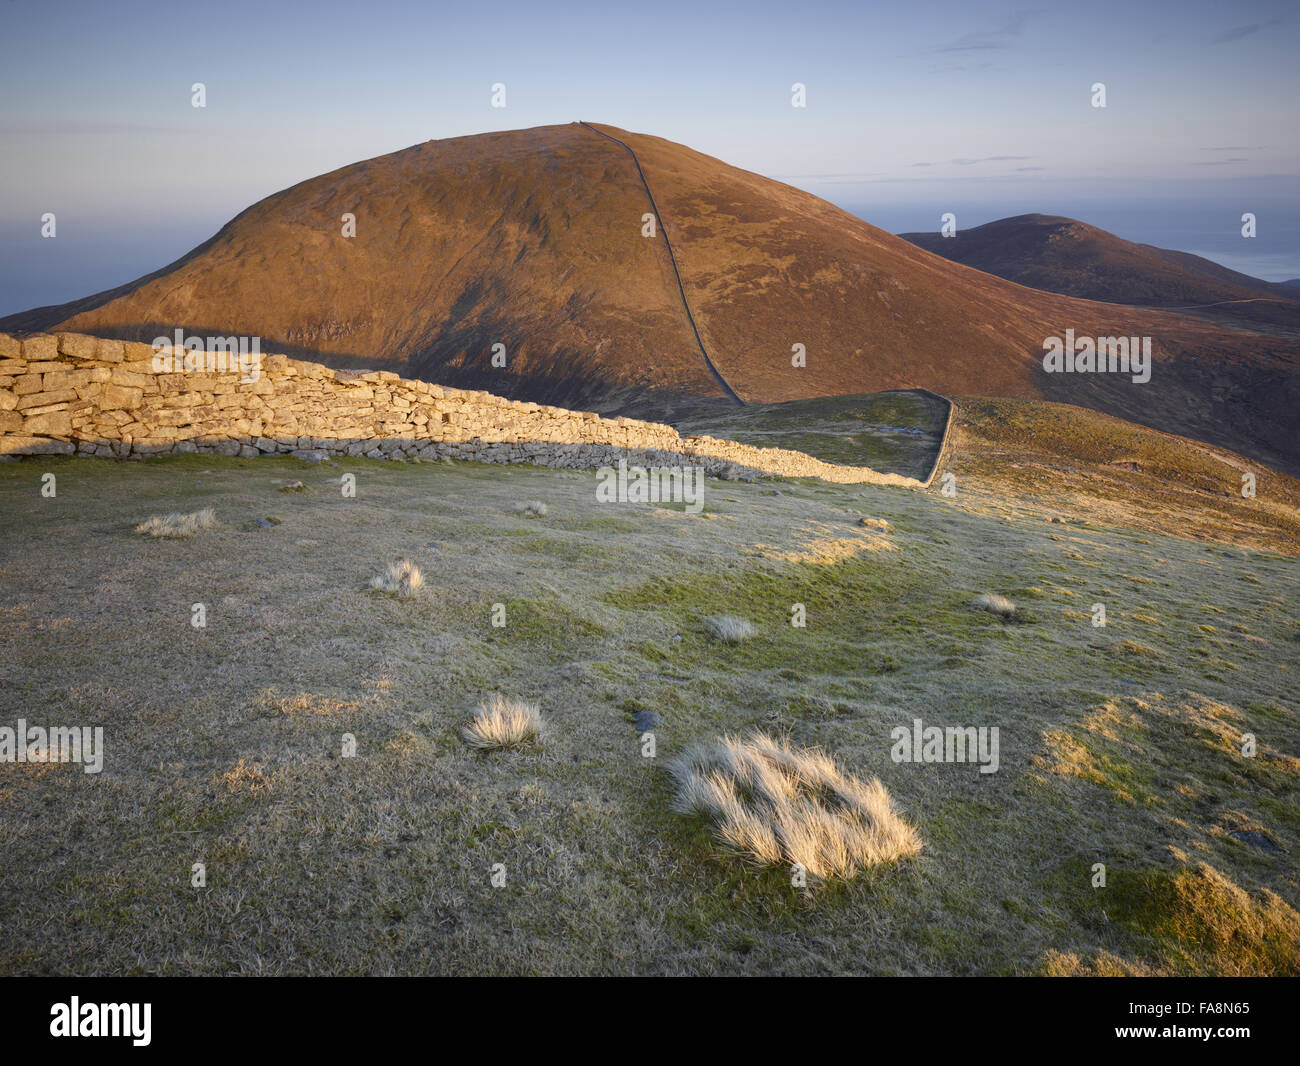 Slieve Donard, Mourne Mountains, County Down, Northern Ireland. Slieve Donard is the highest mountain in Northern Stock Photo